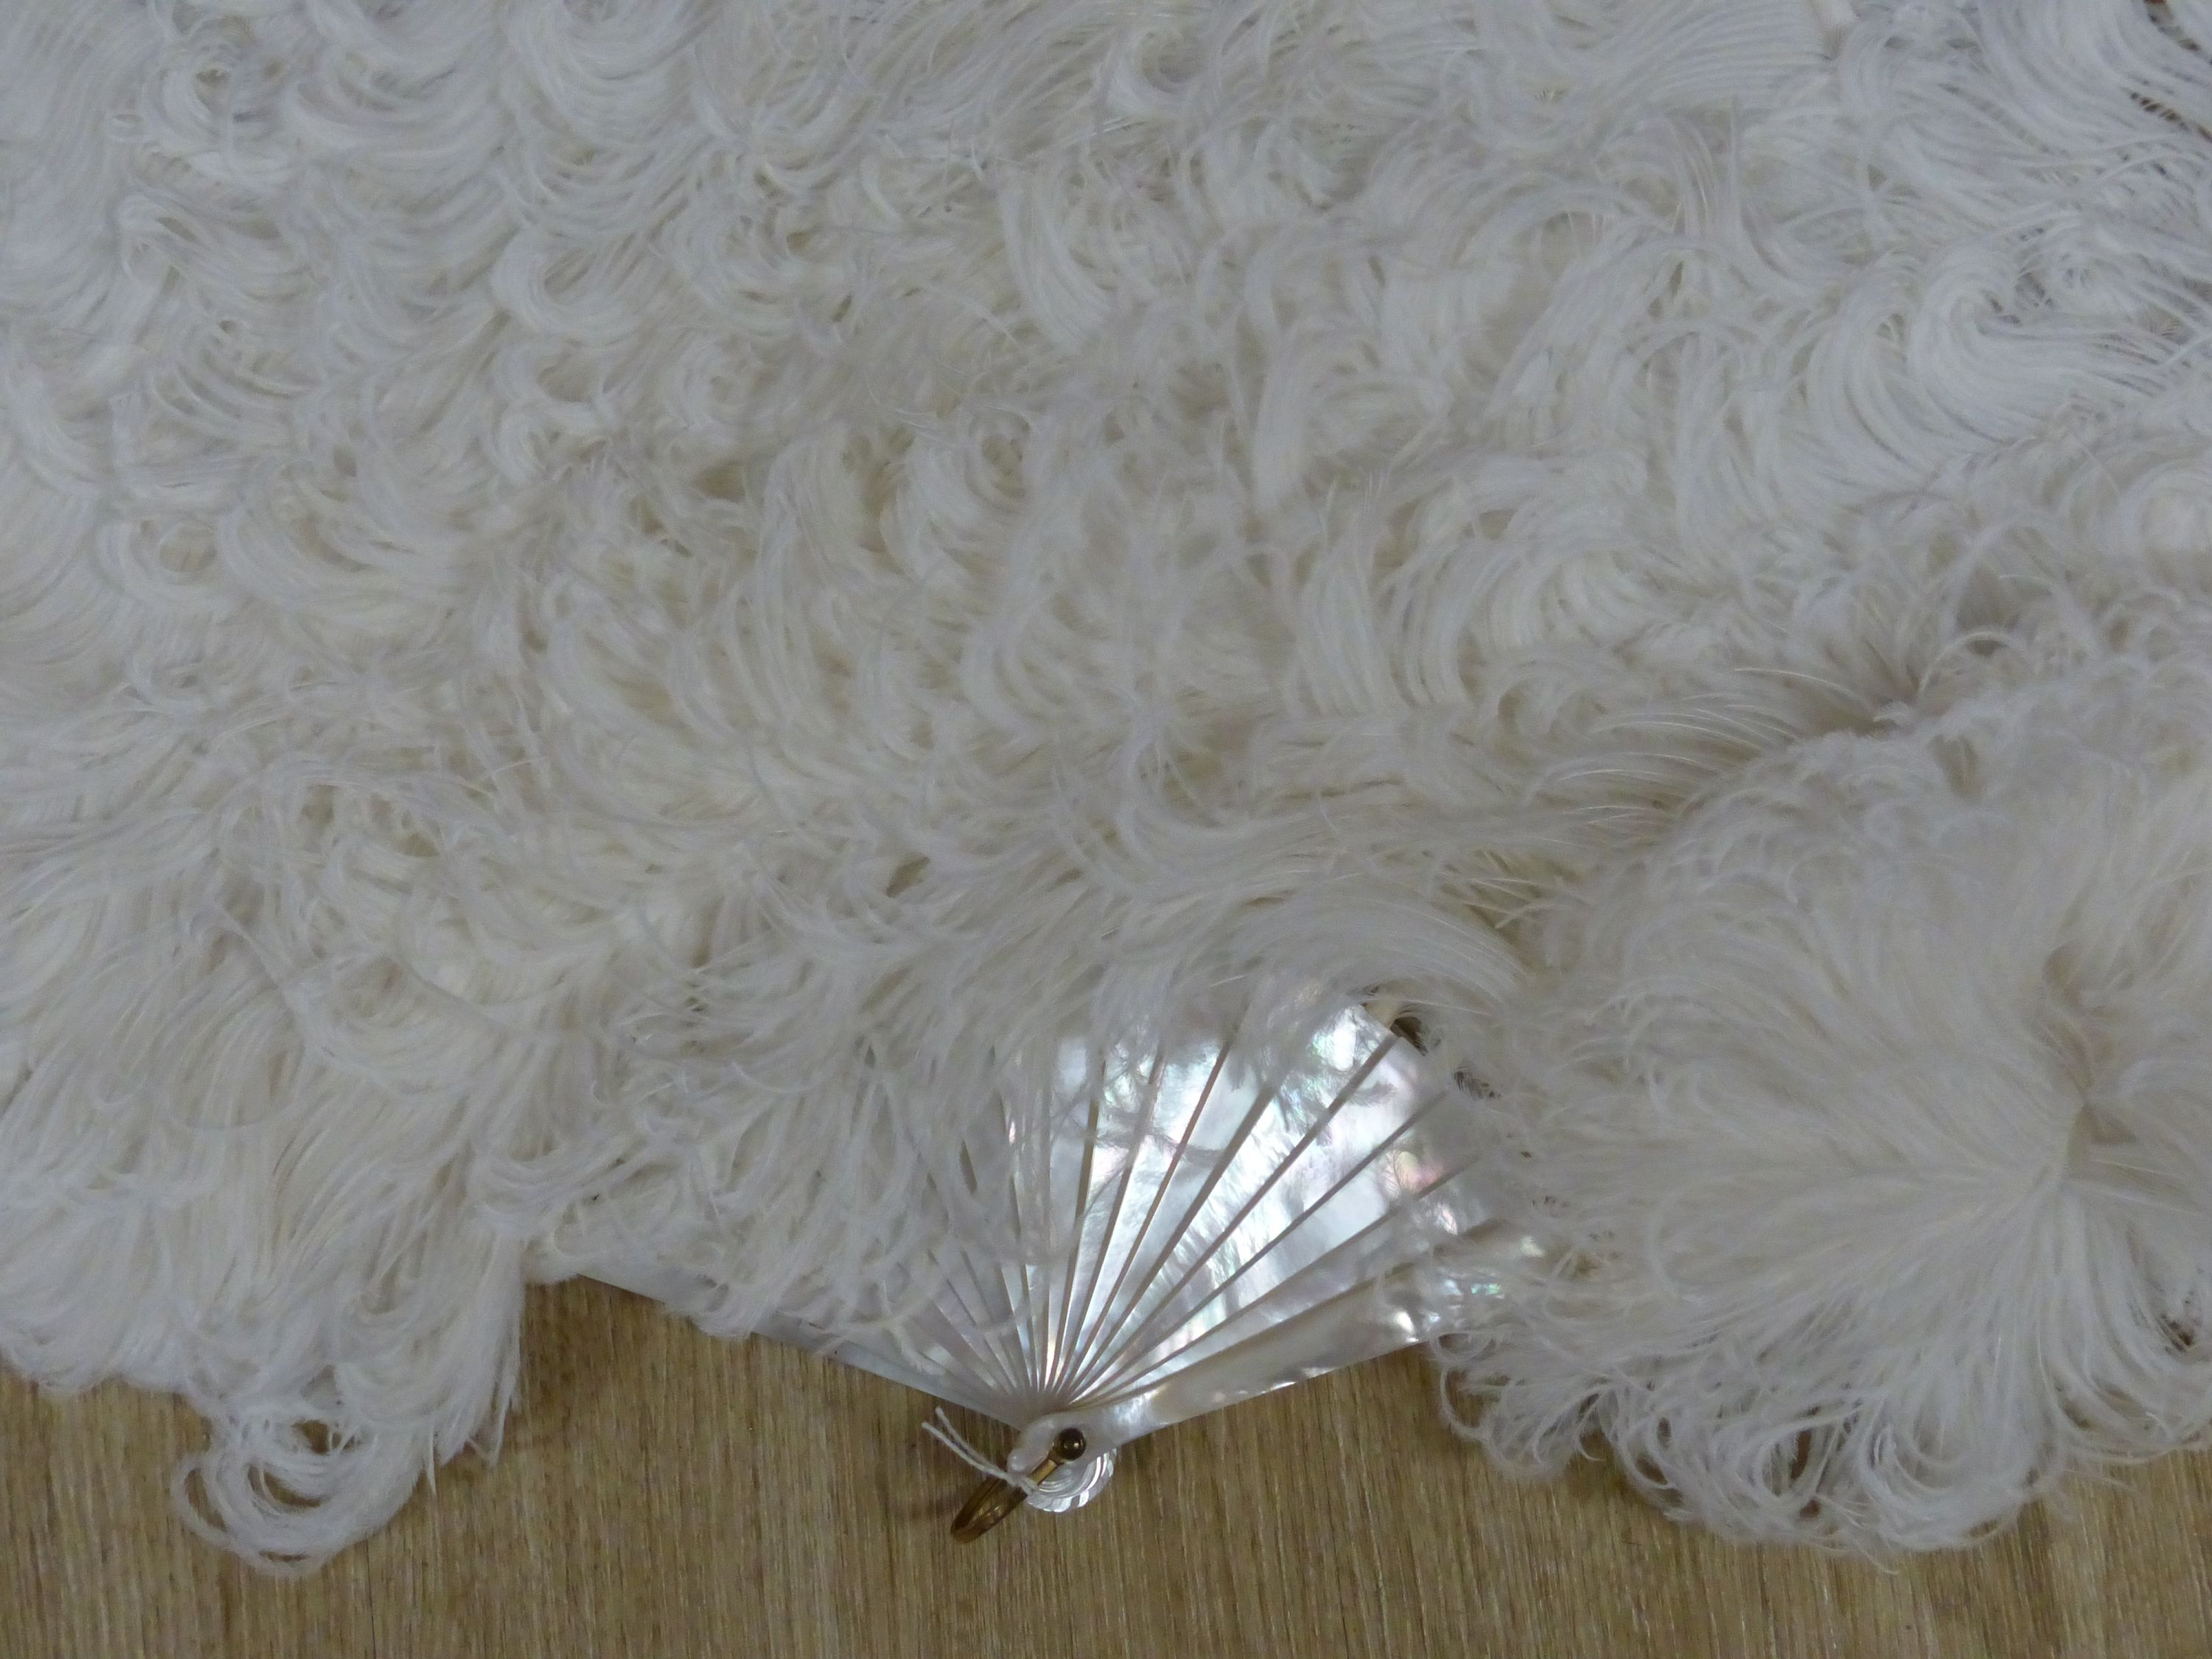 A boxed Duvelleroy ostrich feather fan, early 20th century - Image 2 of 6